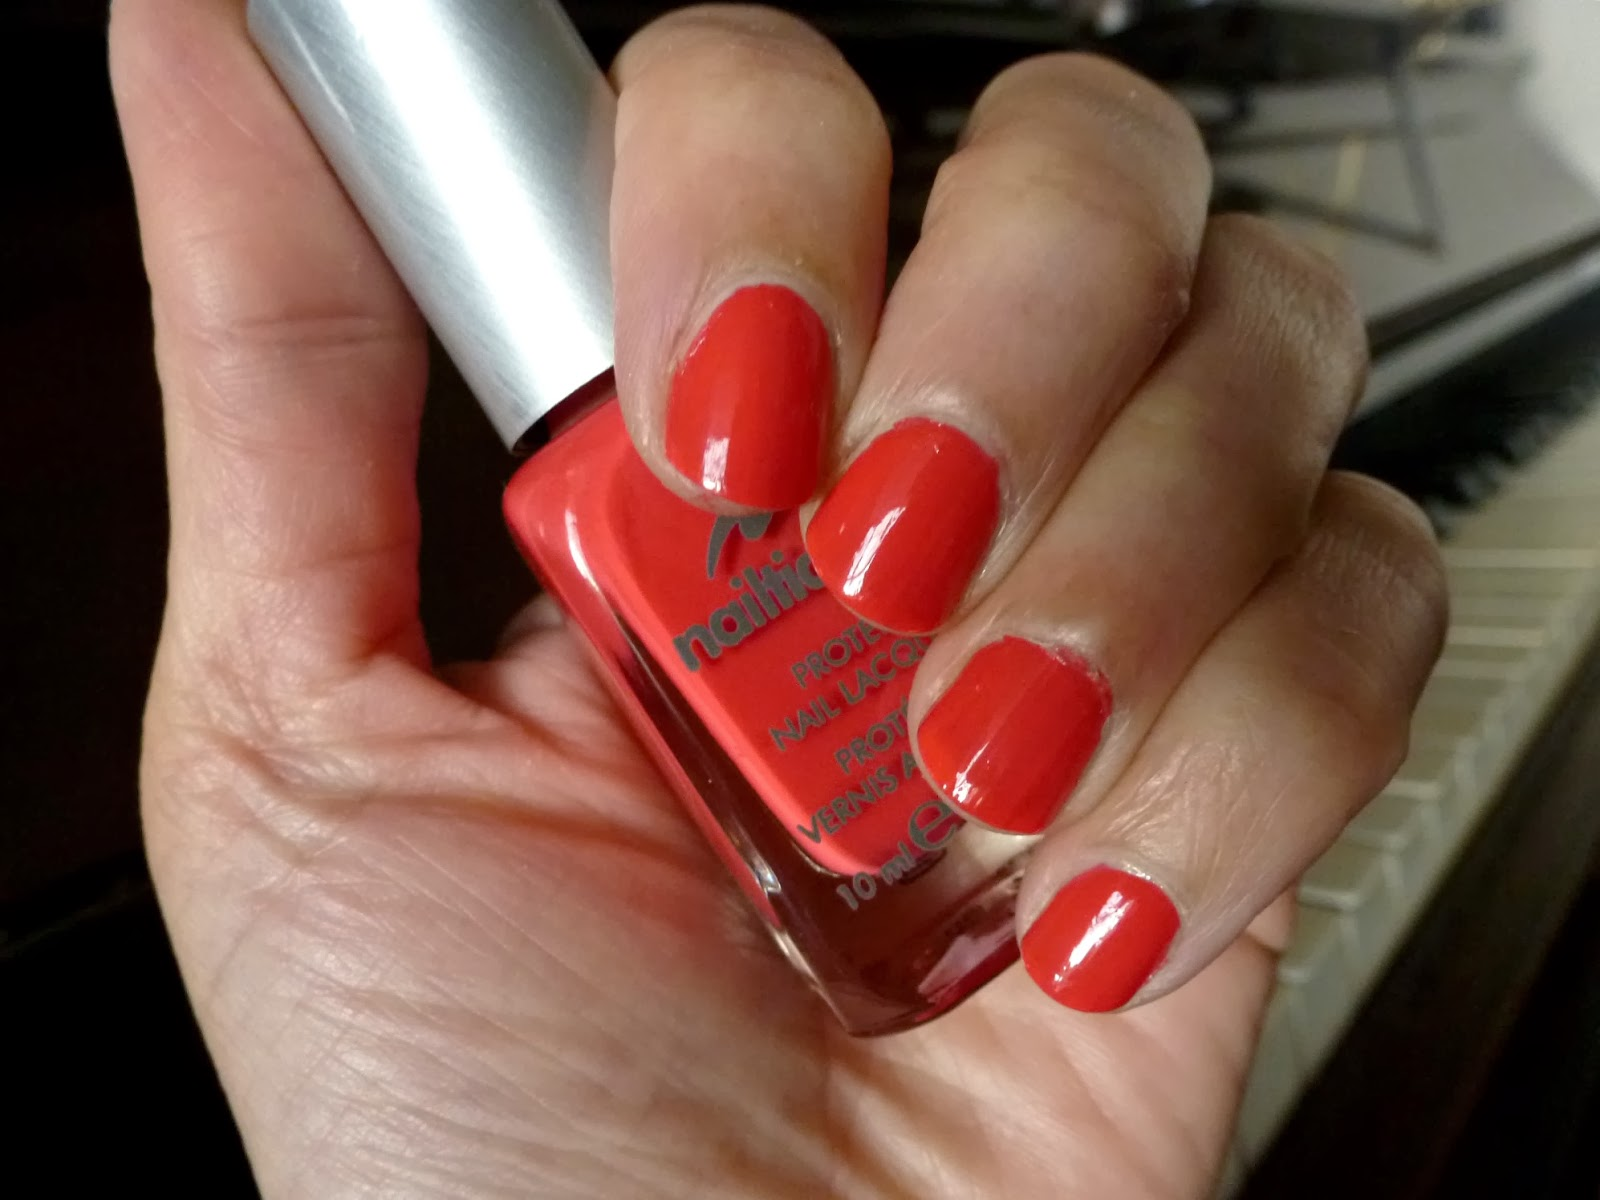 A picture of Nailtiques Nail Lacquer with Protein in Maui